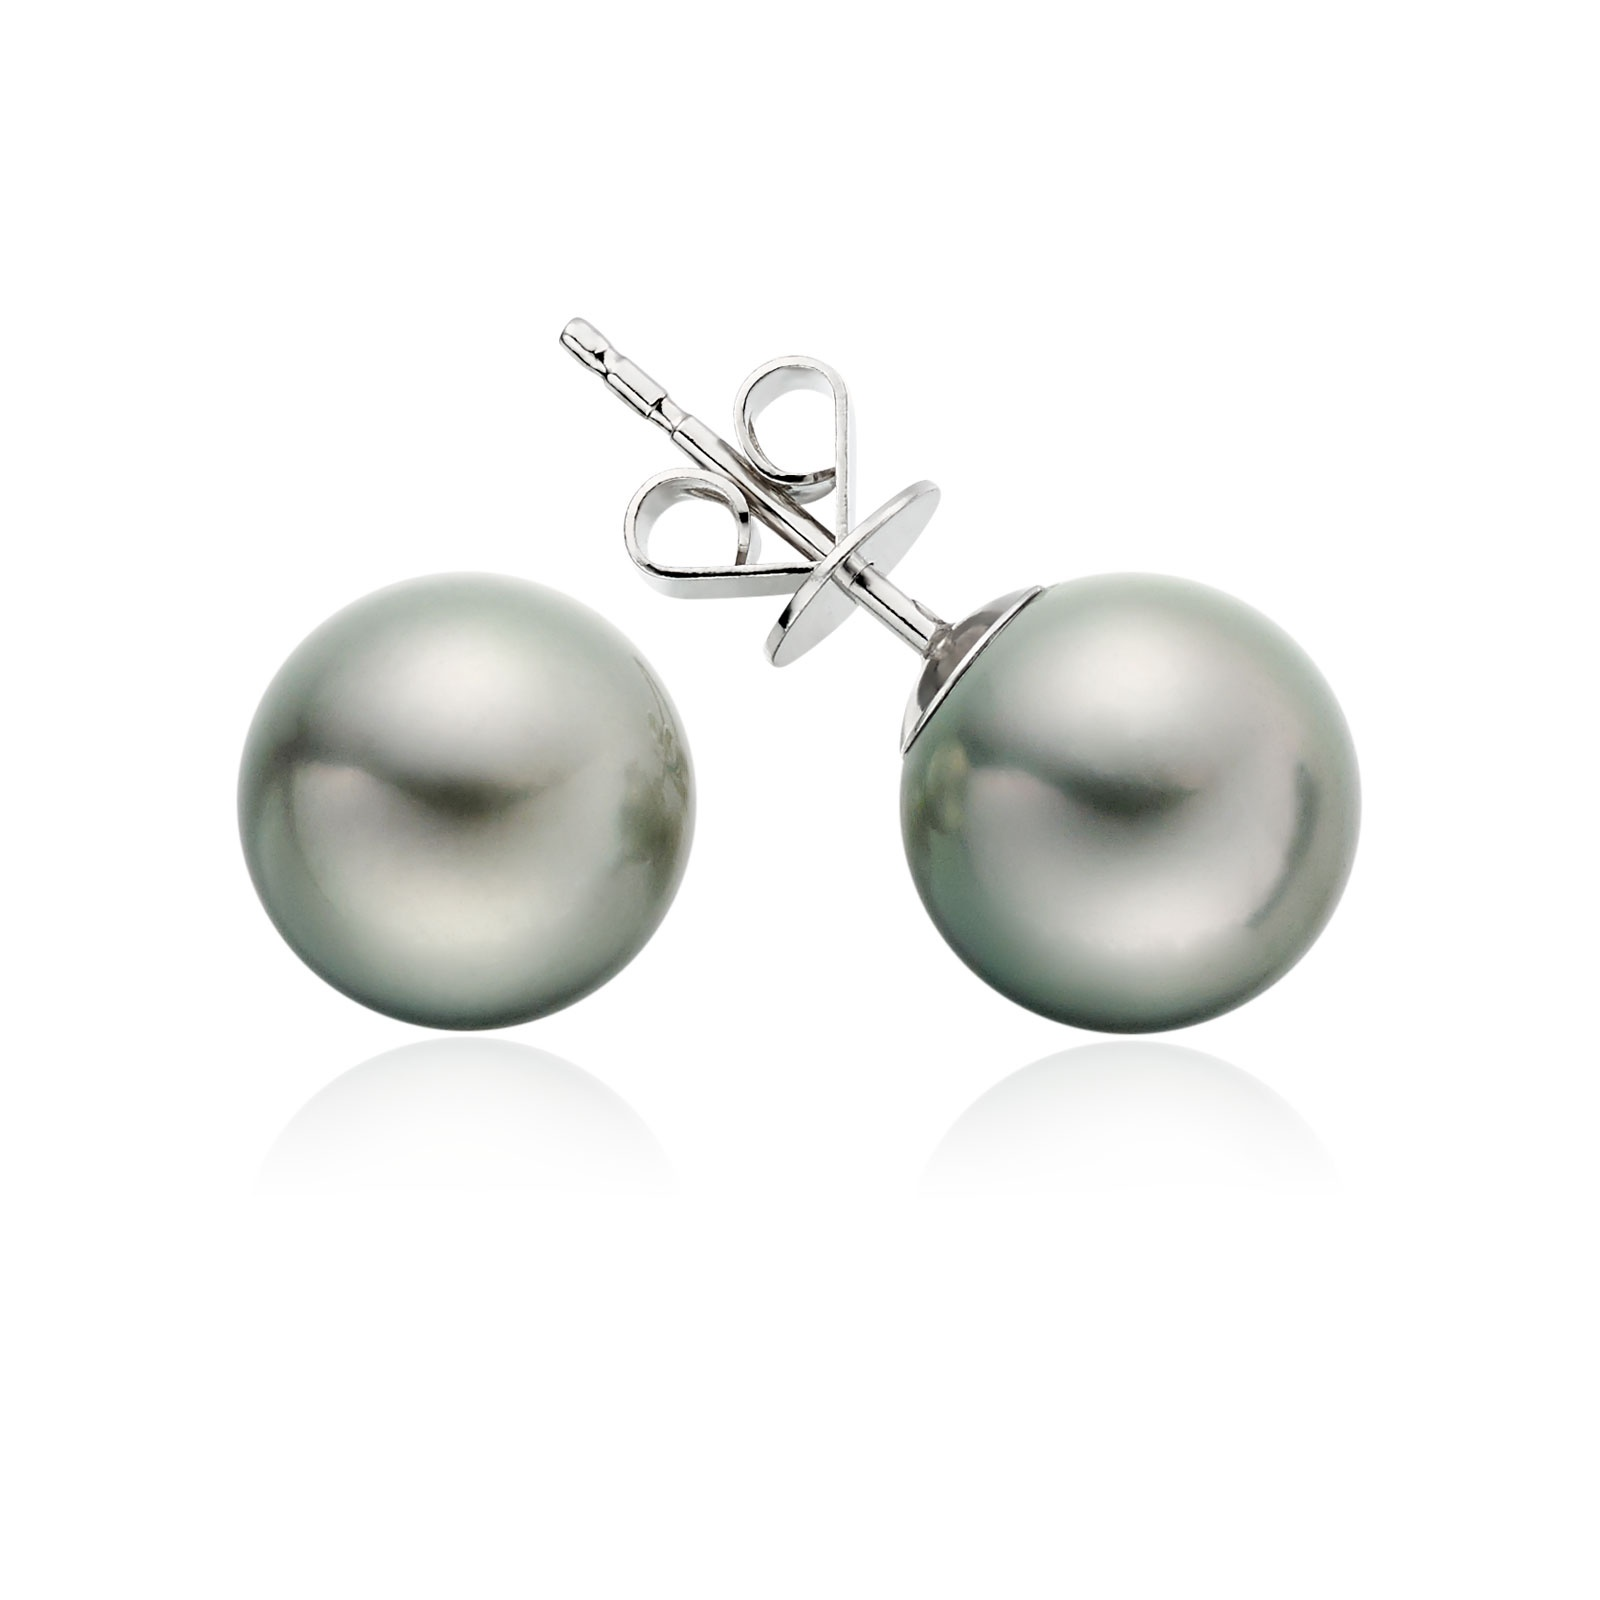 Tahitian Grey Pearl Stud Earrings with 18ct White Gold-1